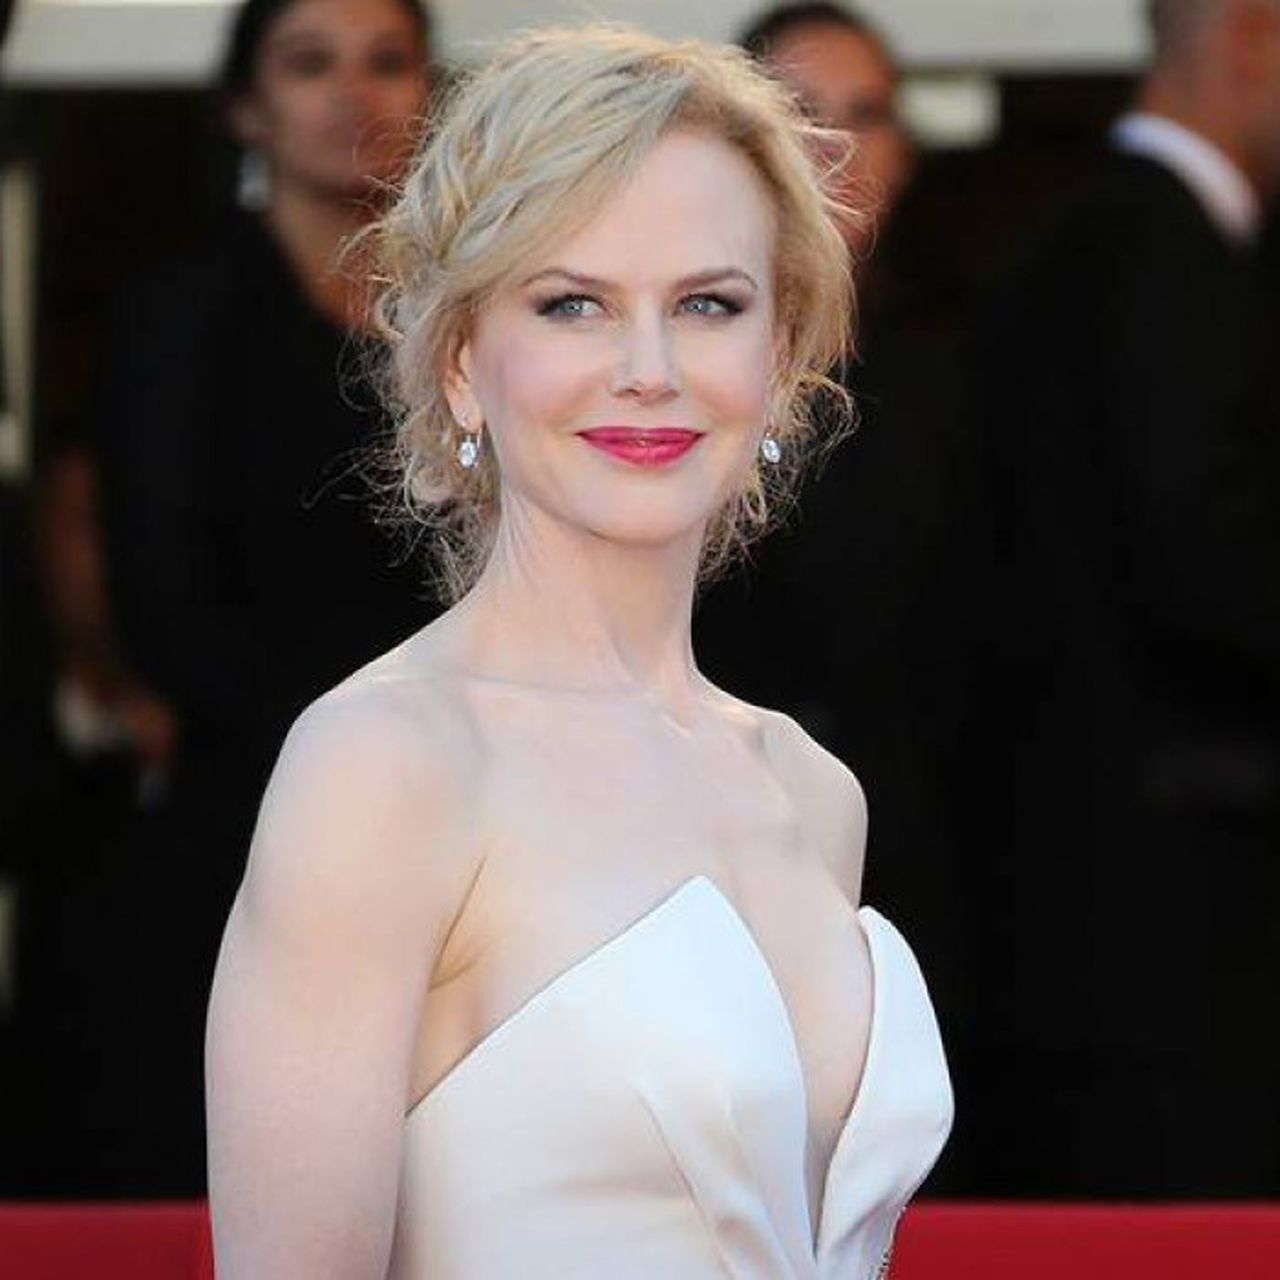 Nicole Kidman shed light on marriage with Tom Cruise